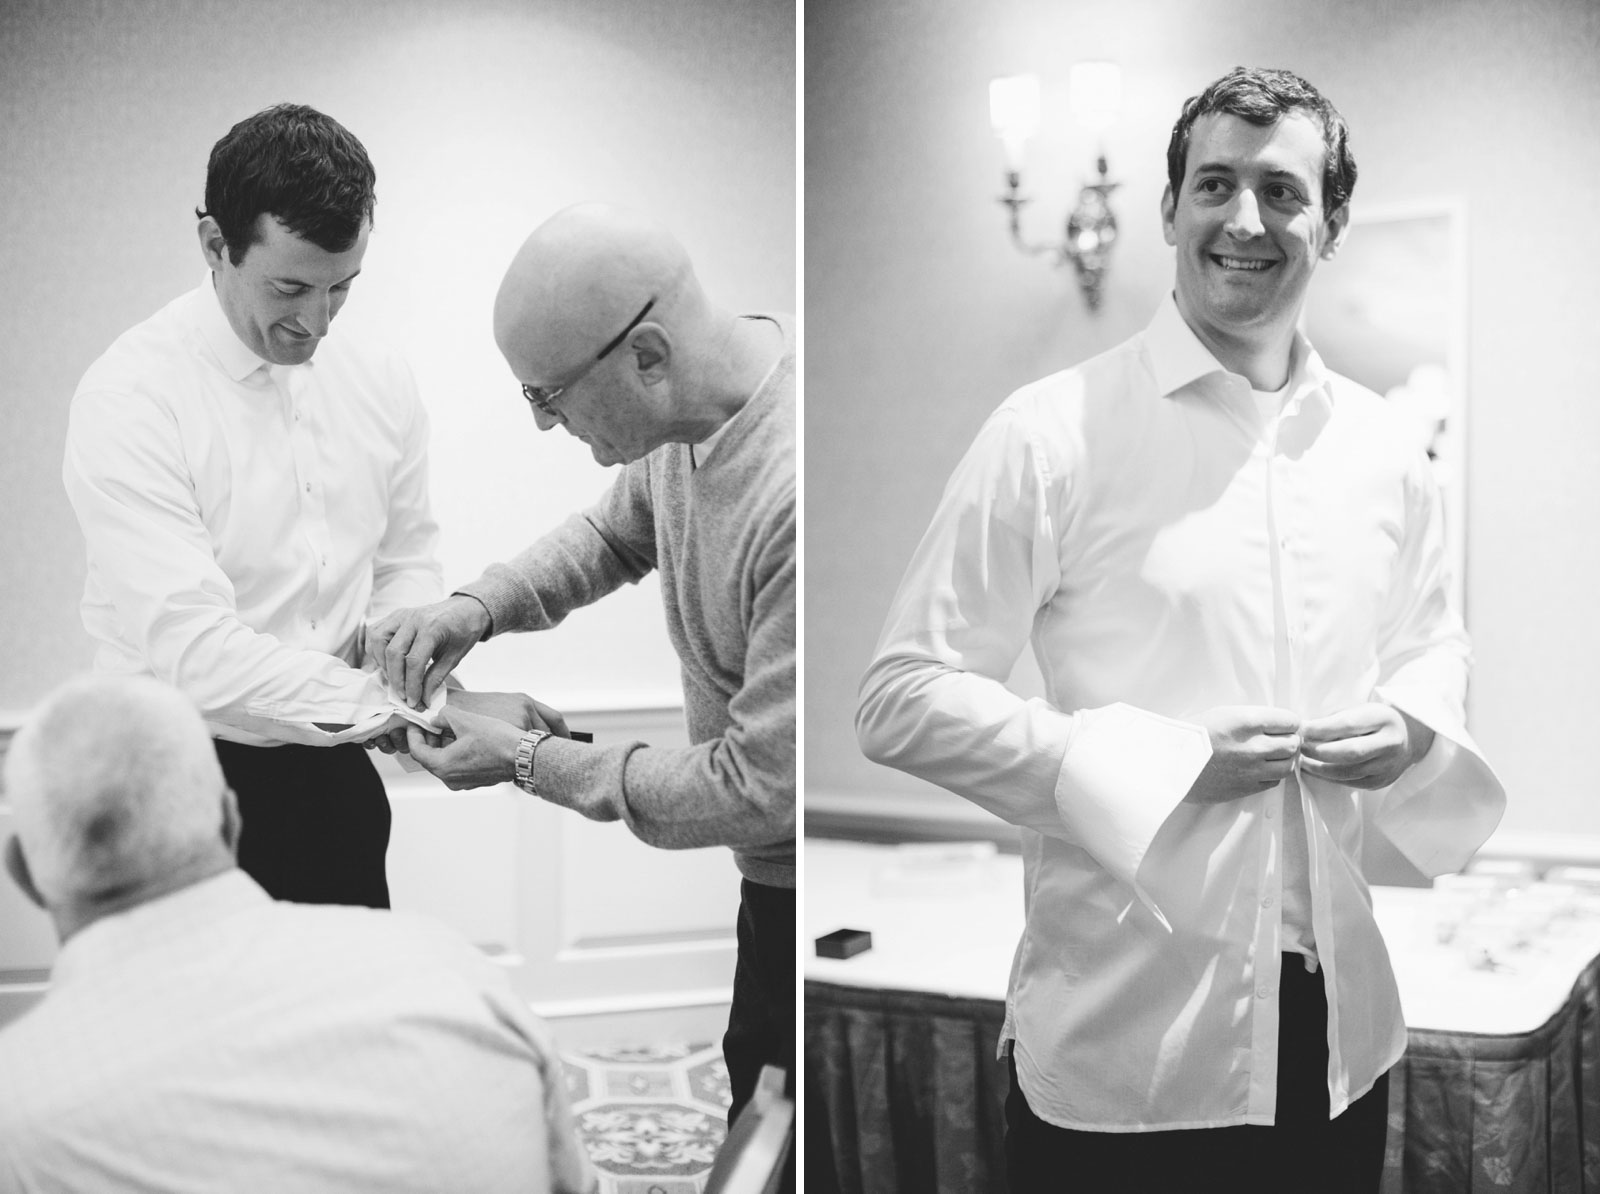 father of the groom helping groom with cufflinks, black and white candid shot of groom getting ready